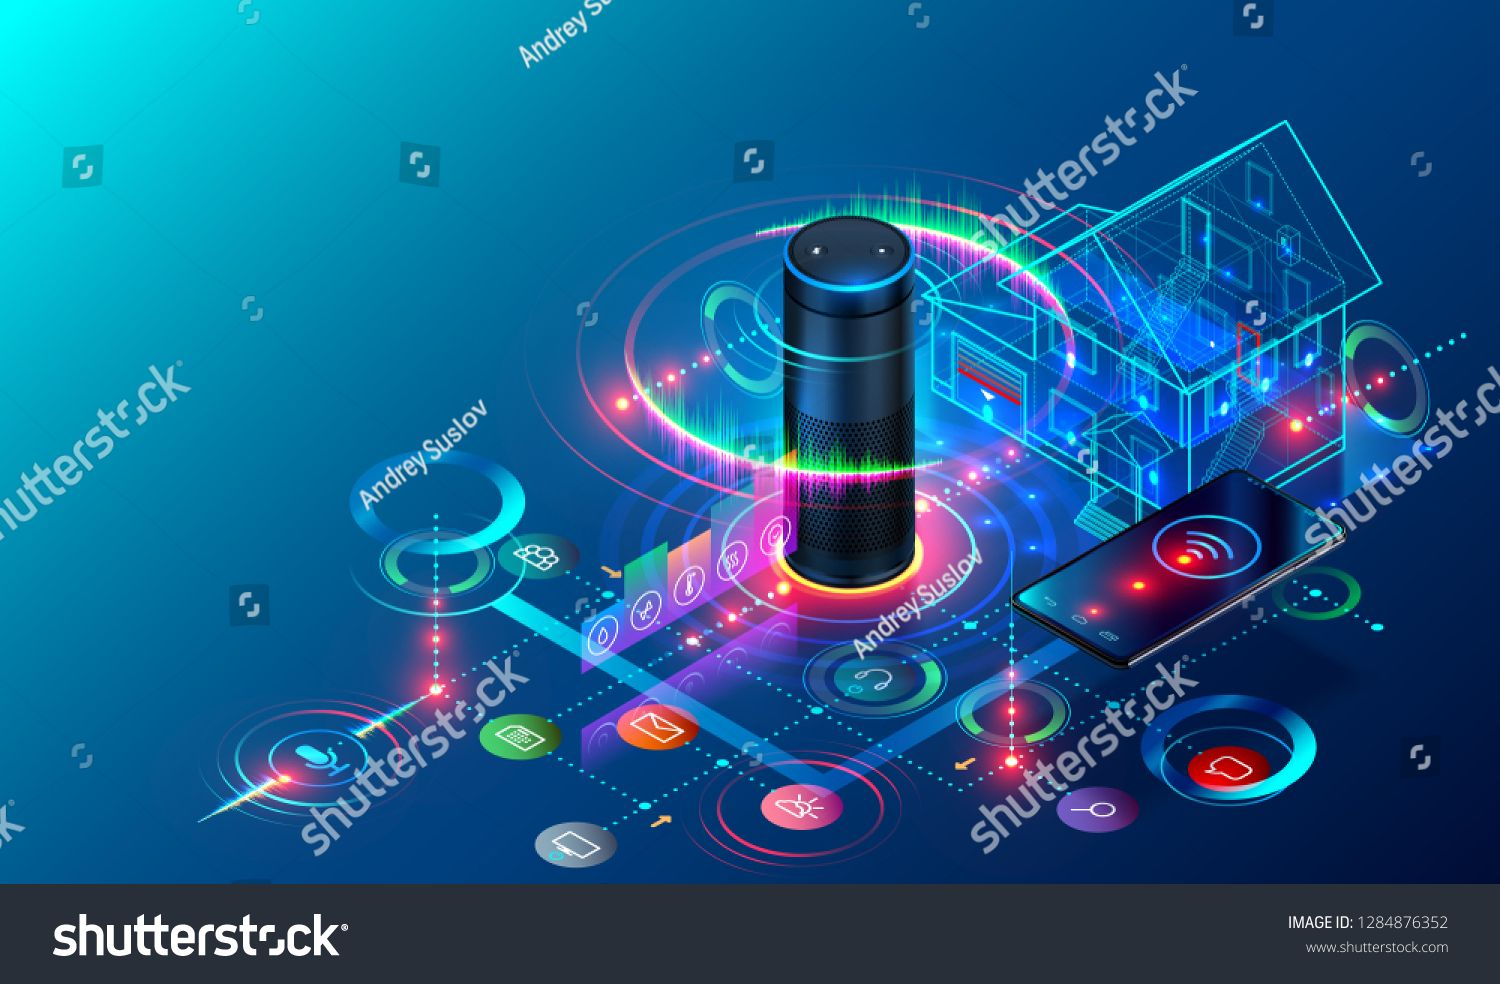 IOT isometric technology concept. Smart Speaker recognizes voice commands and controls System of Smart Home. The Phone Communicates with Devices of Internet of Things via Wireless Connection. #Ad , #ad, #recognizes#Speaker#commands#voice